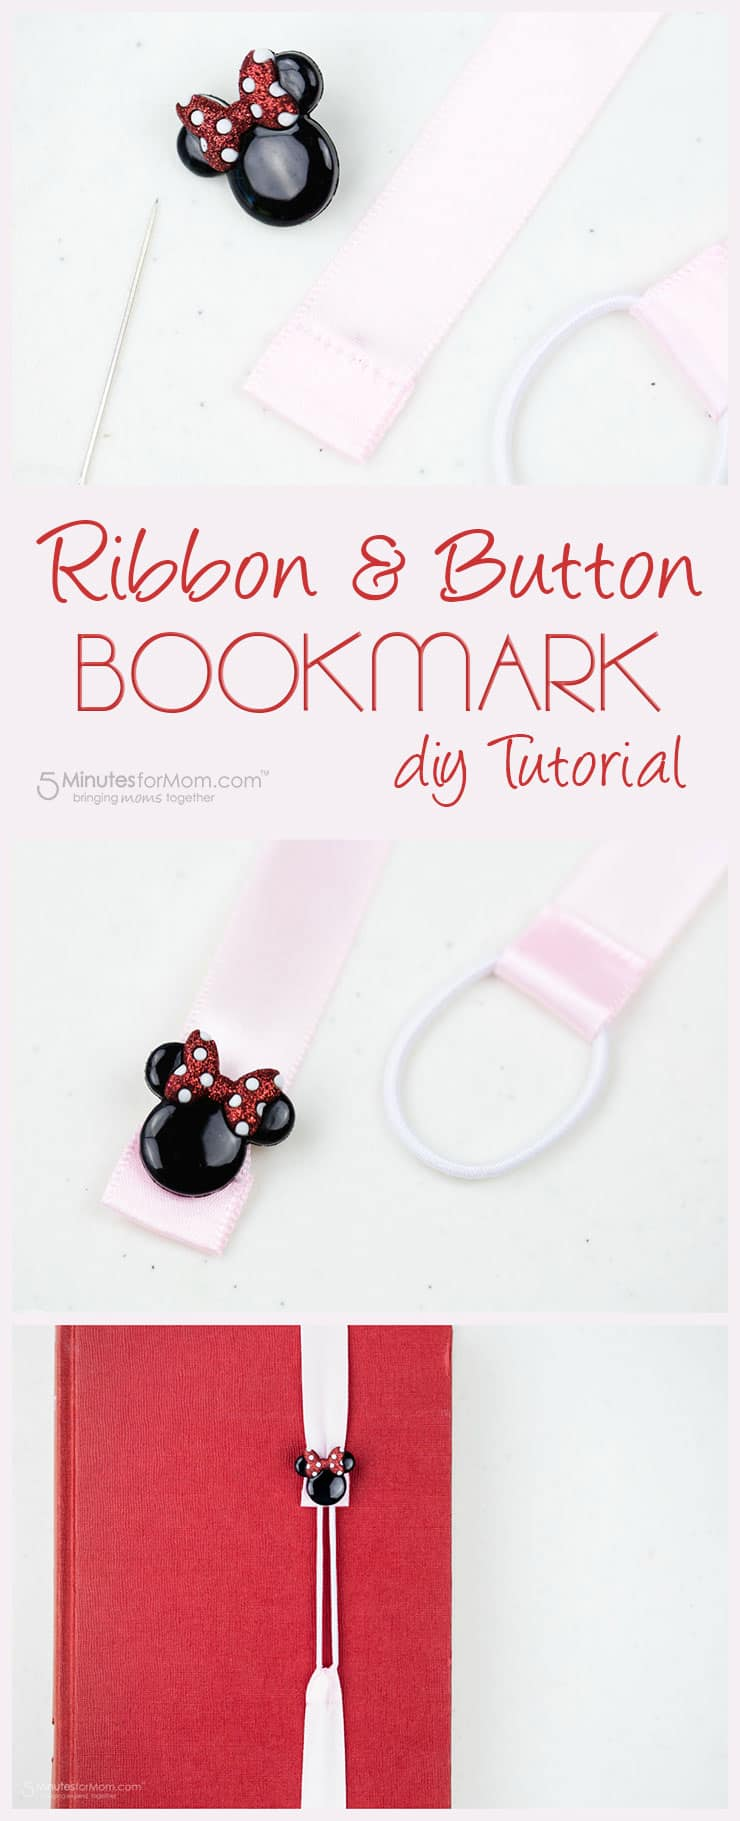 Ribbon and button bookmark DIY tutorial